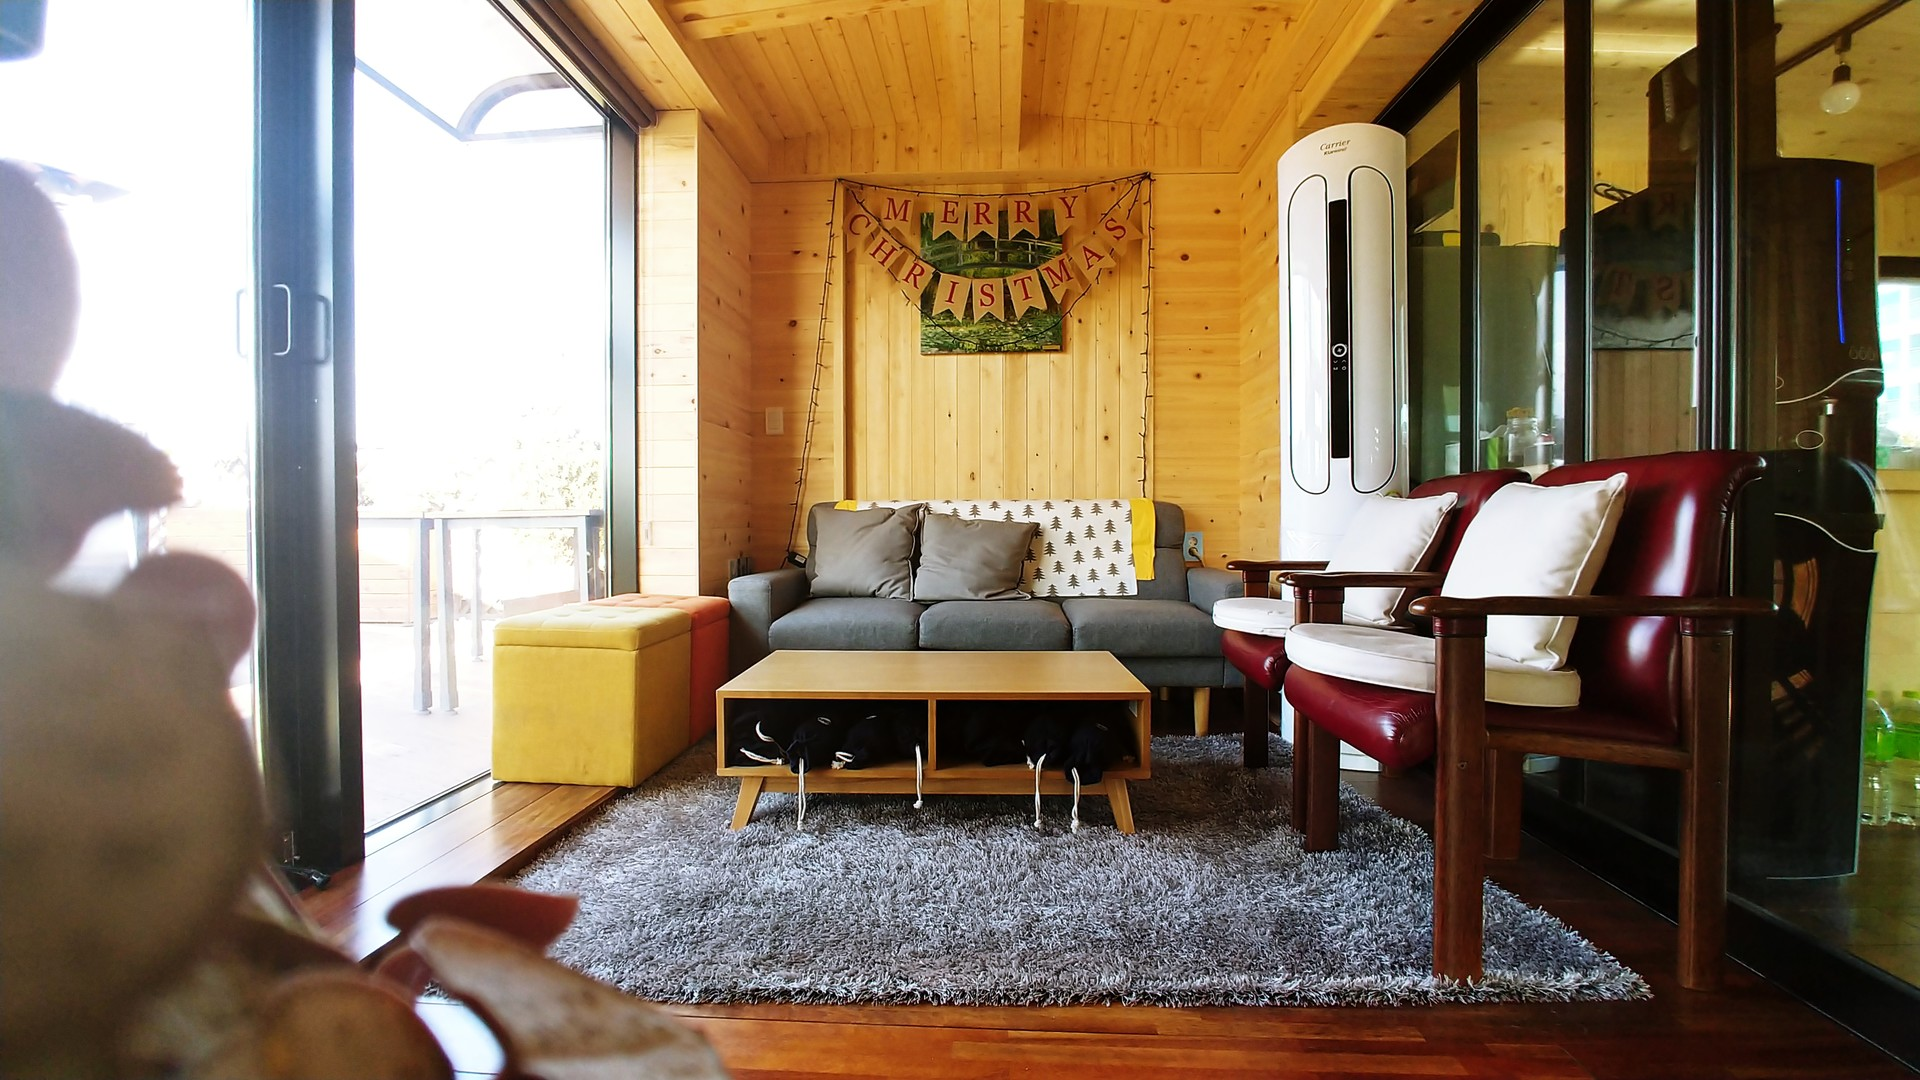 Pleasant Modern And New Sharehouse In Seoul Download Free Architecture Designs Embacsunscenecom